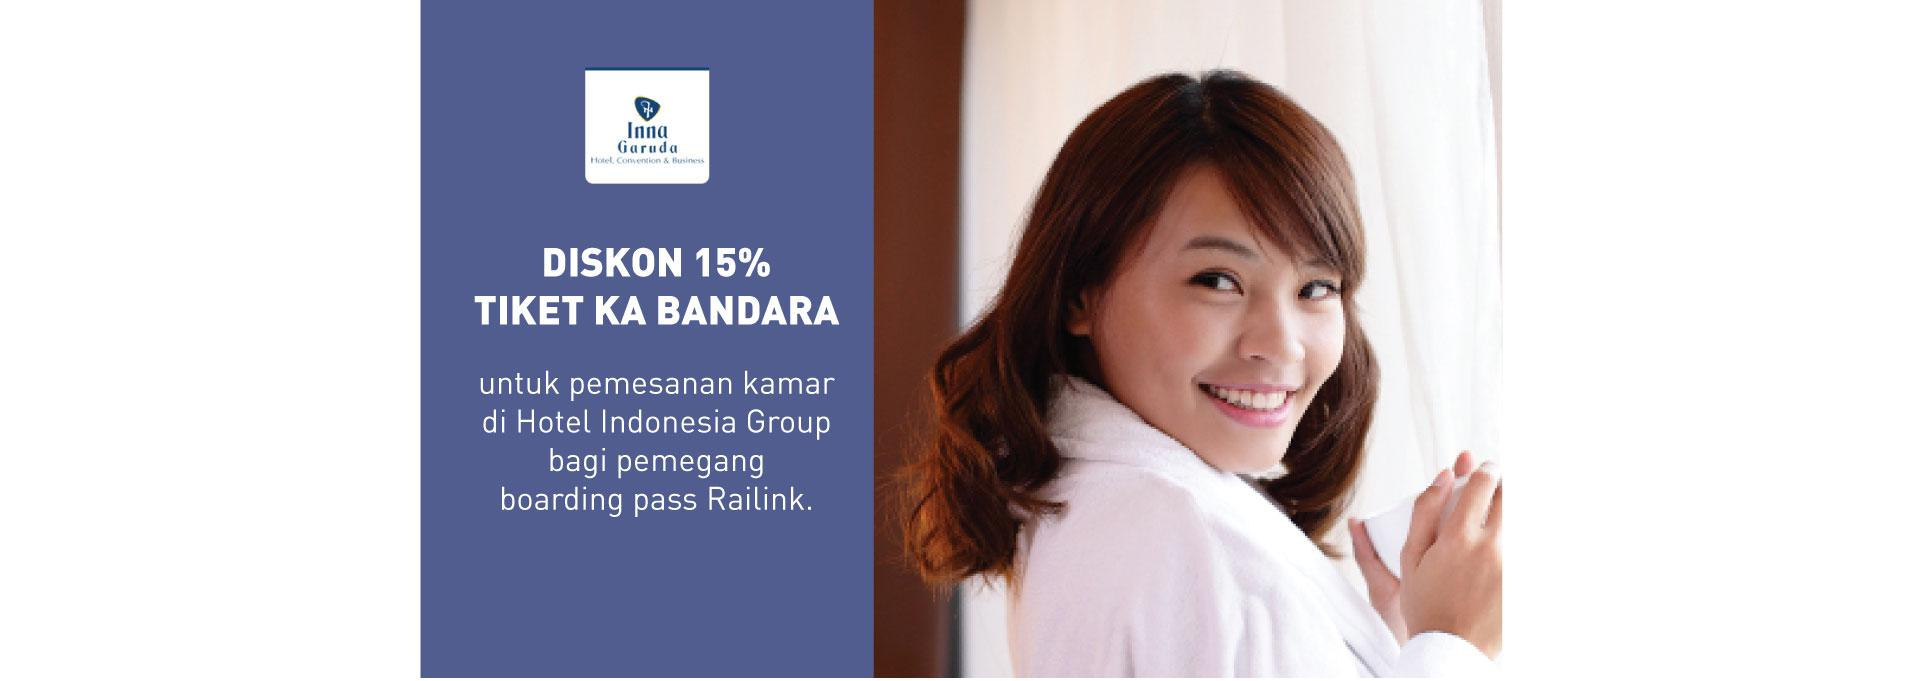 15% DISCOUNT IN HOTEL INDONESIA GROUP FOR RAILINK BOARDING PASS HOLDERS